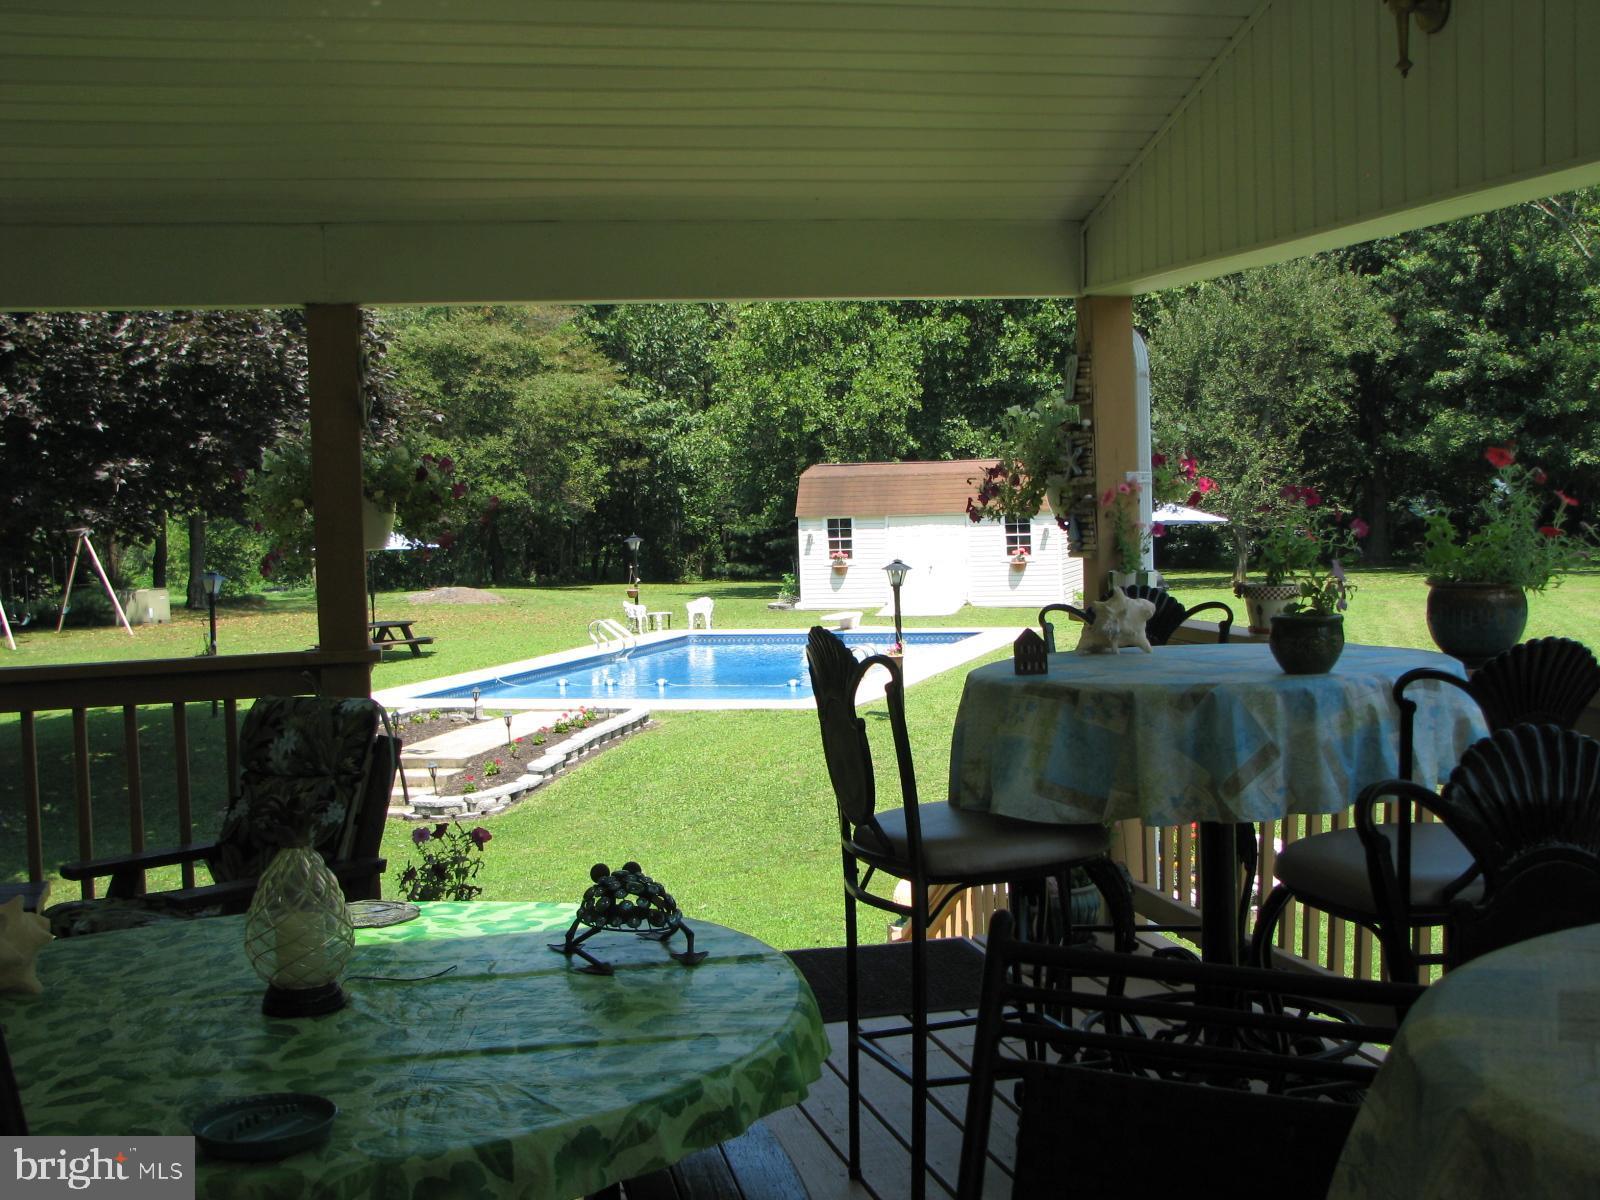 ROOF COVERED DECK